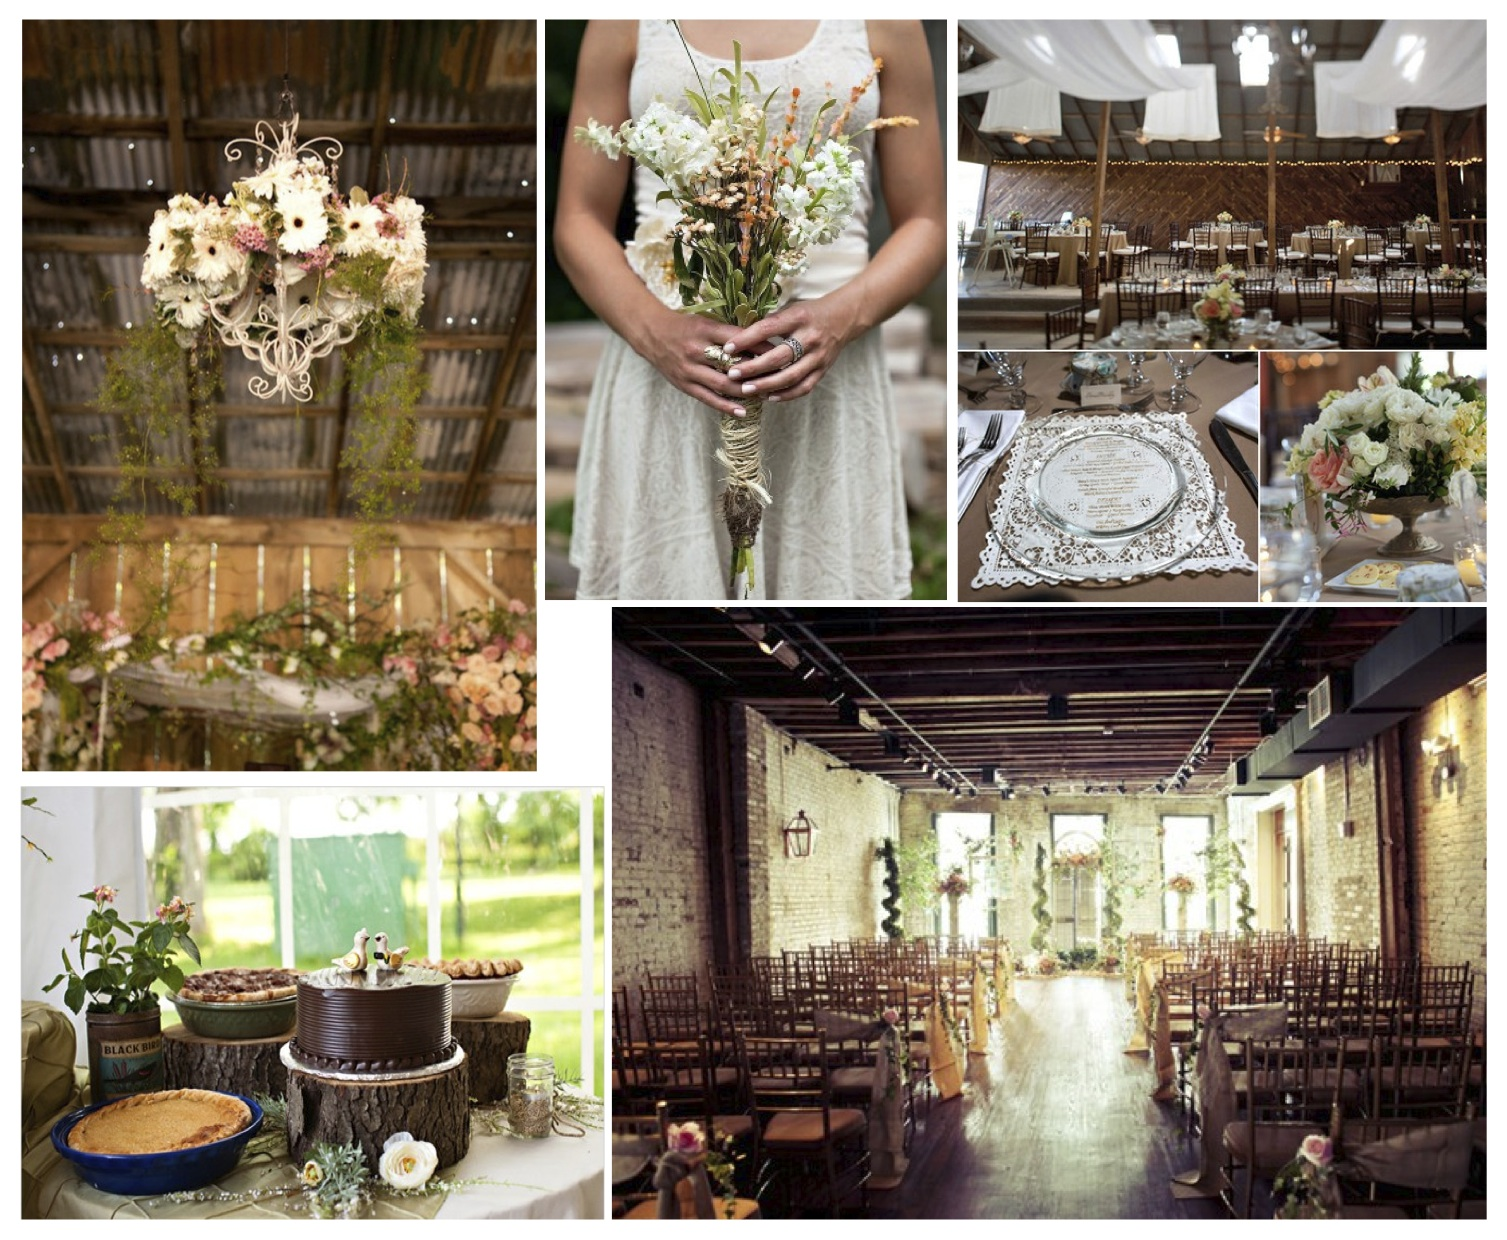 Backyard Country Wedding Ideas | Mystical Designs and Tags - photo#8